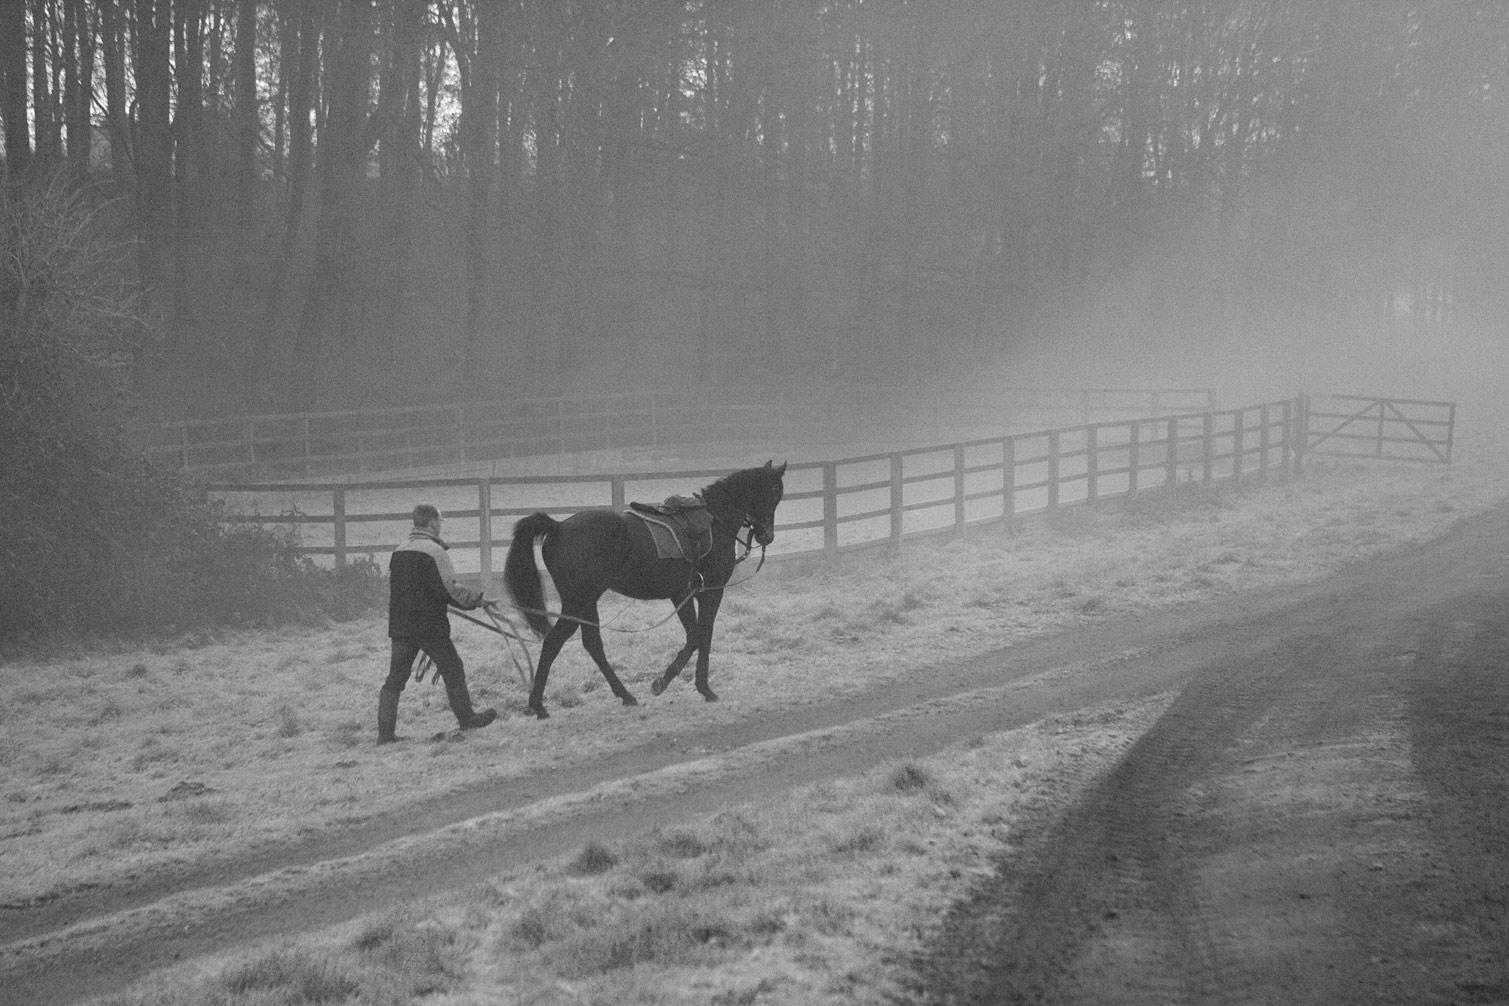 Yearling-being-lead-trained-in-early-fog